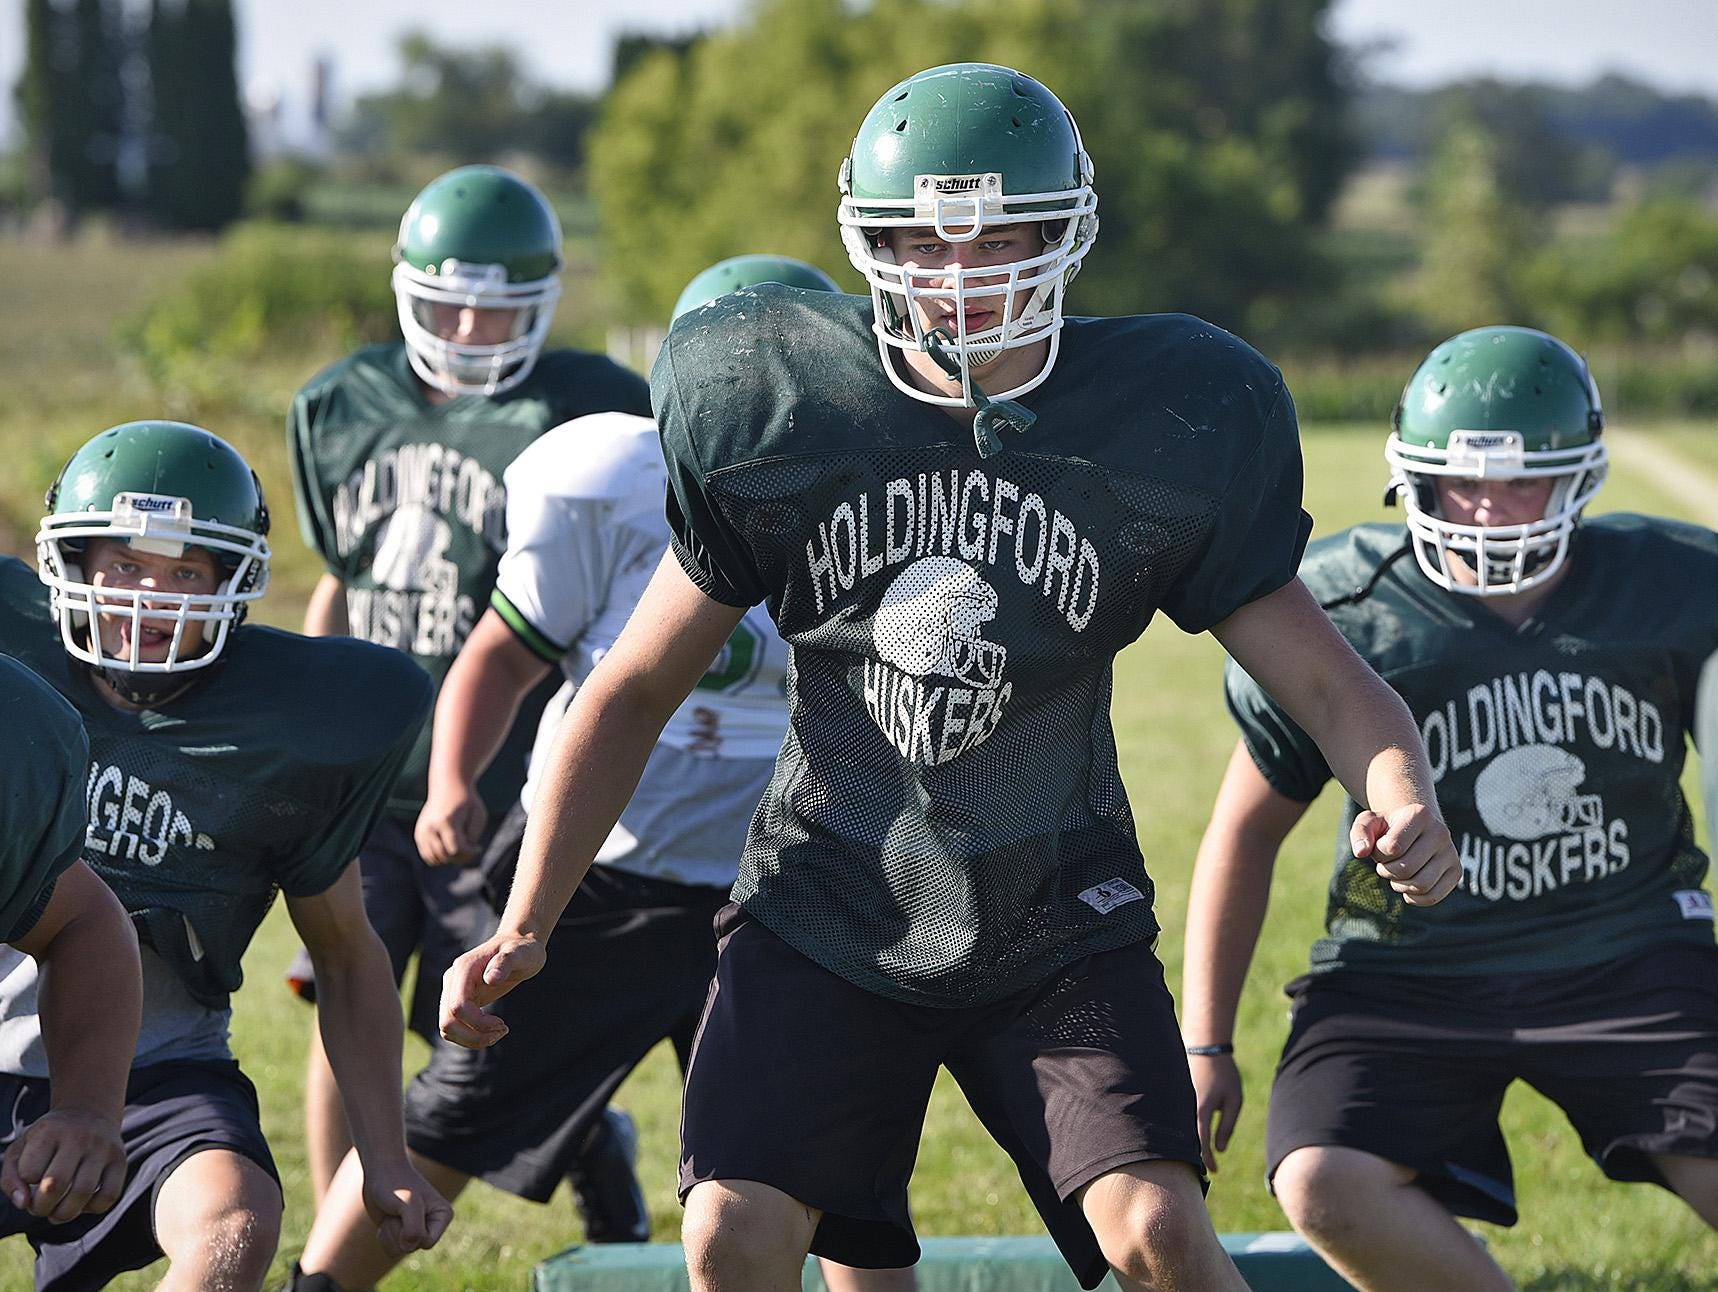 Holdingford players complete a drill during practice Wednesday in Holdingford.